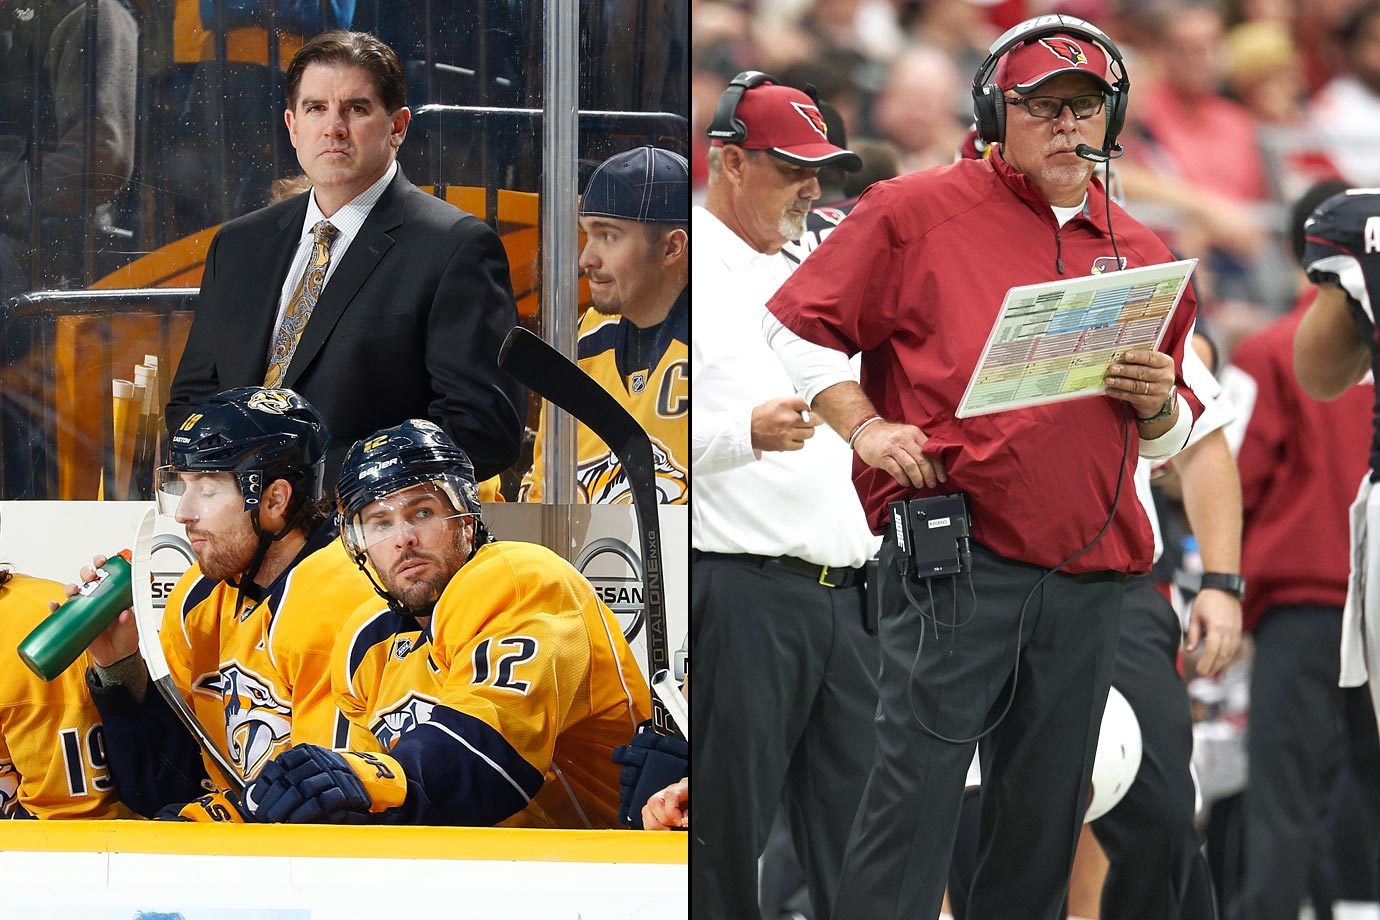 The Predators made Laviolette, a veteran of 12 seasons with the Islanders, Hurricanes, and Flyers (with whom he was reportedly paid between $1-$2 million), the second head coach in Nashville's franchise history with a multi-year deal in May 2014. The Toronto Sun says he as well as Therrien, Vigneault, and Ruff are members of the $2 million club. Arians, the former offensive coordinator of the Colts, signed on with the Cardinals in January 2013 for four years at $6 million per according to NFL.com.